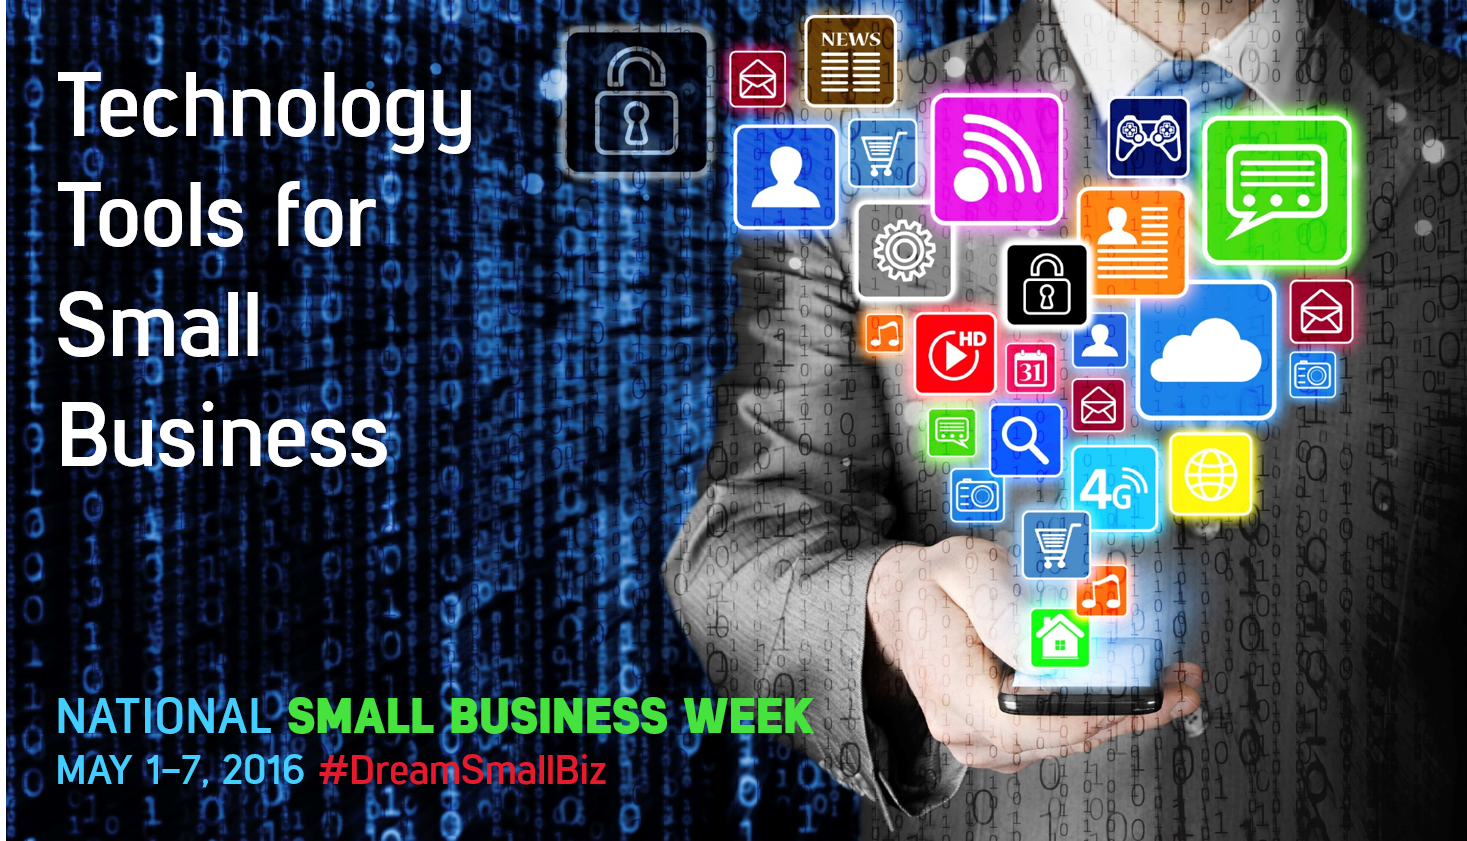 Celebrate National Small Business Week with 5 Top Technology Tools for Small Business